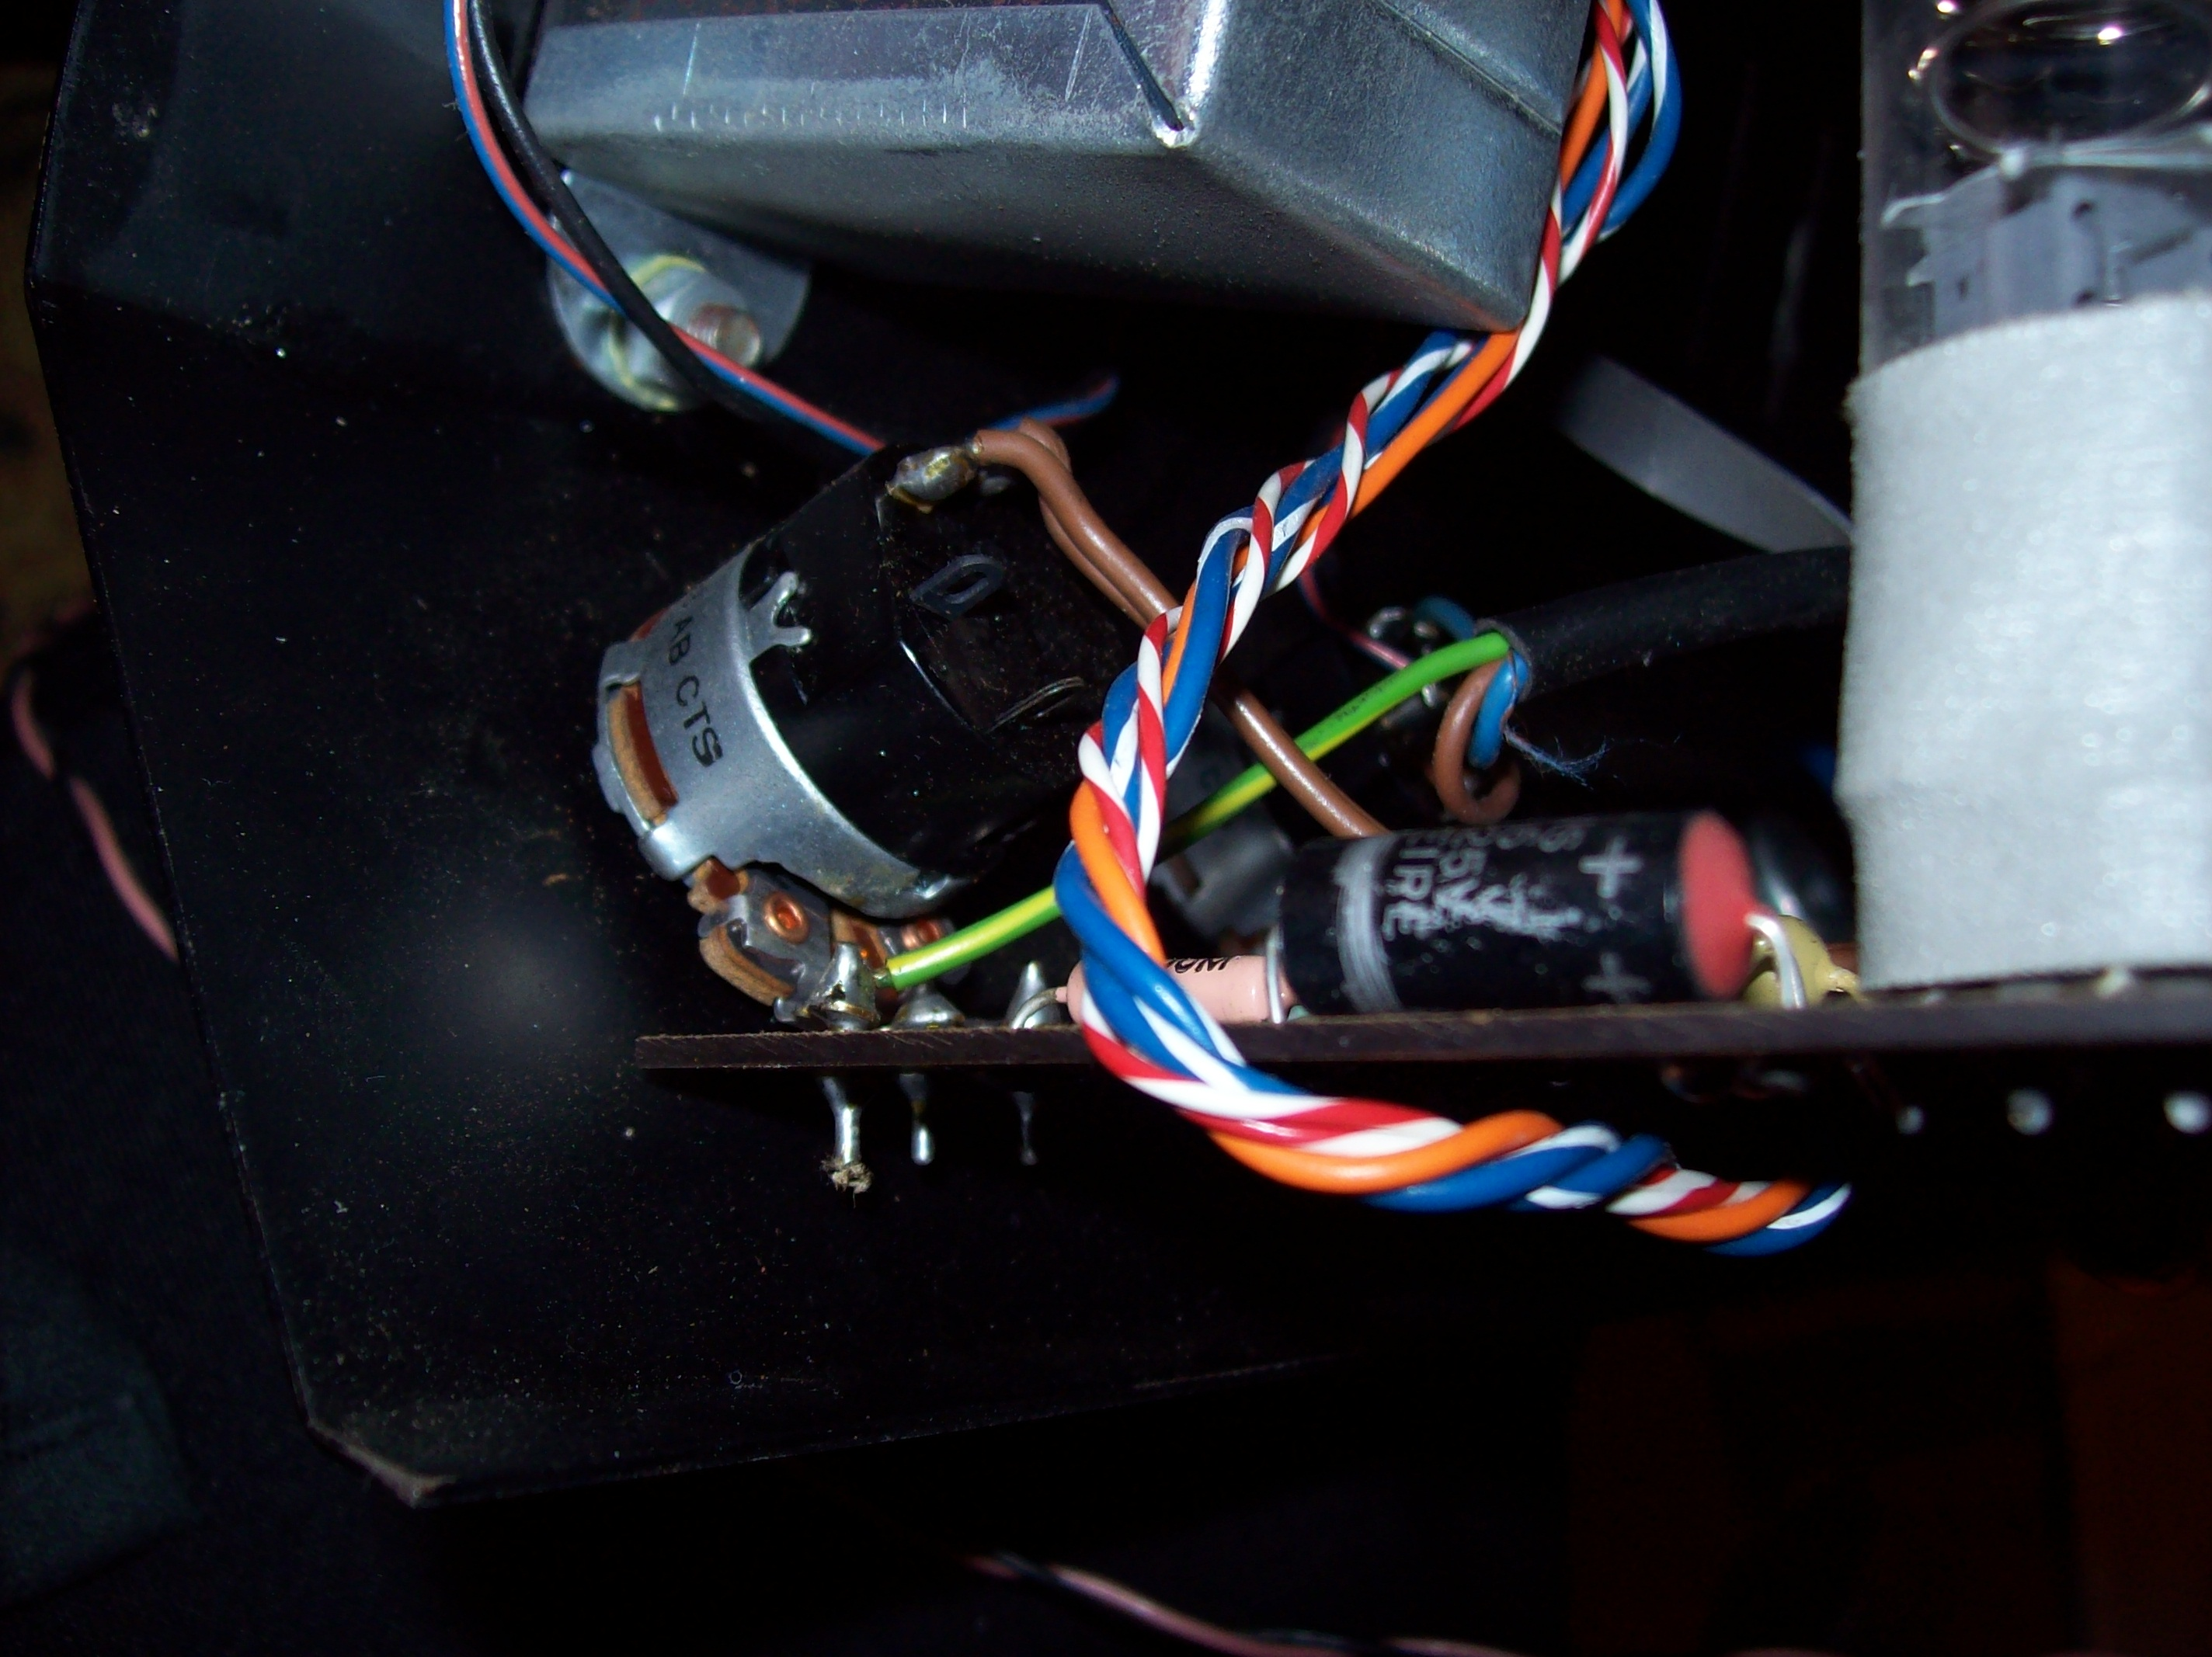 Picture of Help re-building/modding my bass guitar with an old tube amp i want to salvage parts from?